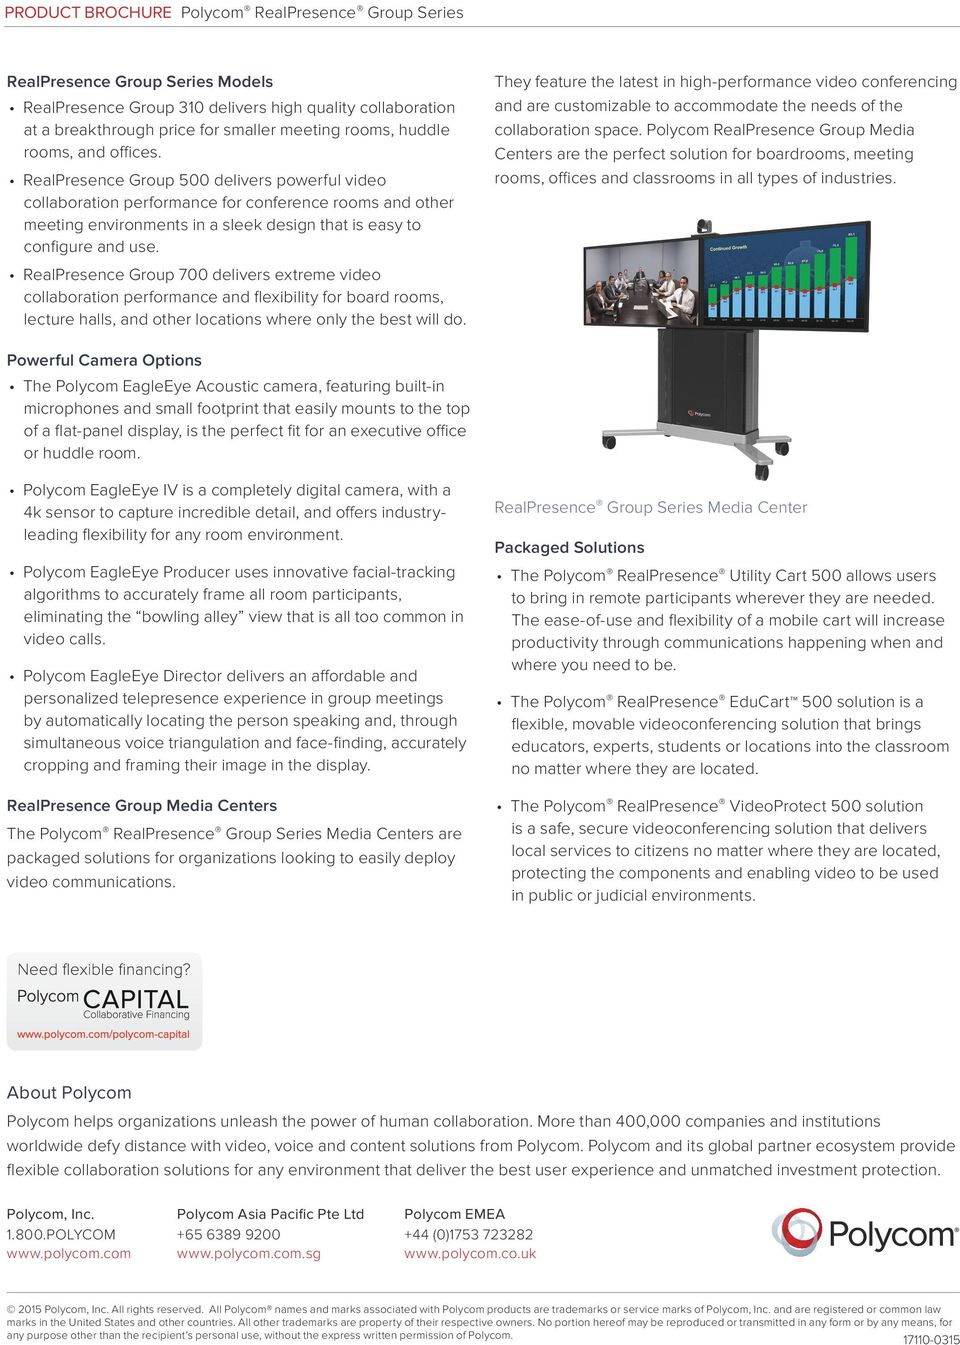 RealPresence Group 700 delivers extreme video collaboration performance and flexibility for board rooms, lecture halls, and other locations where only the best will do.